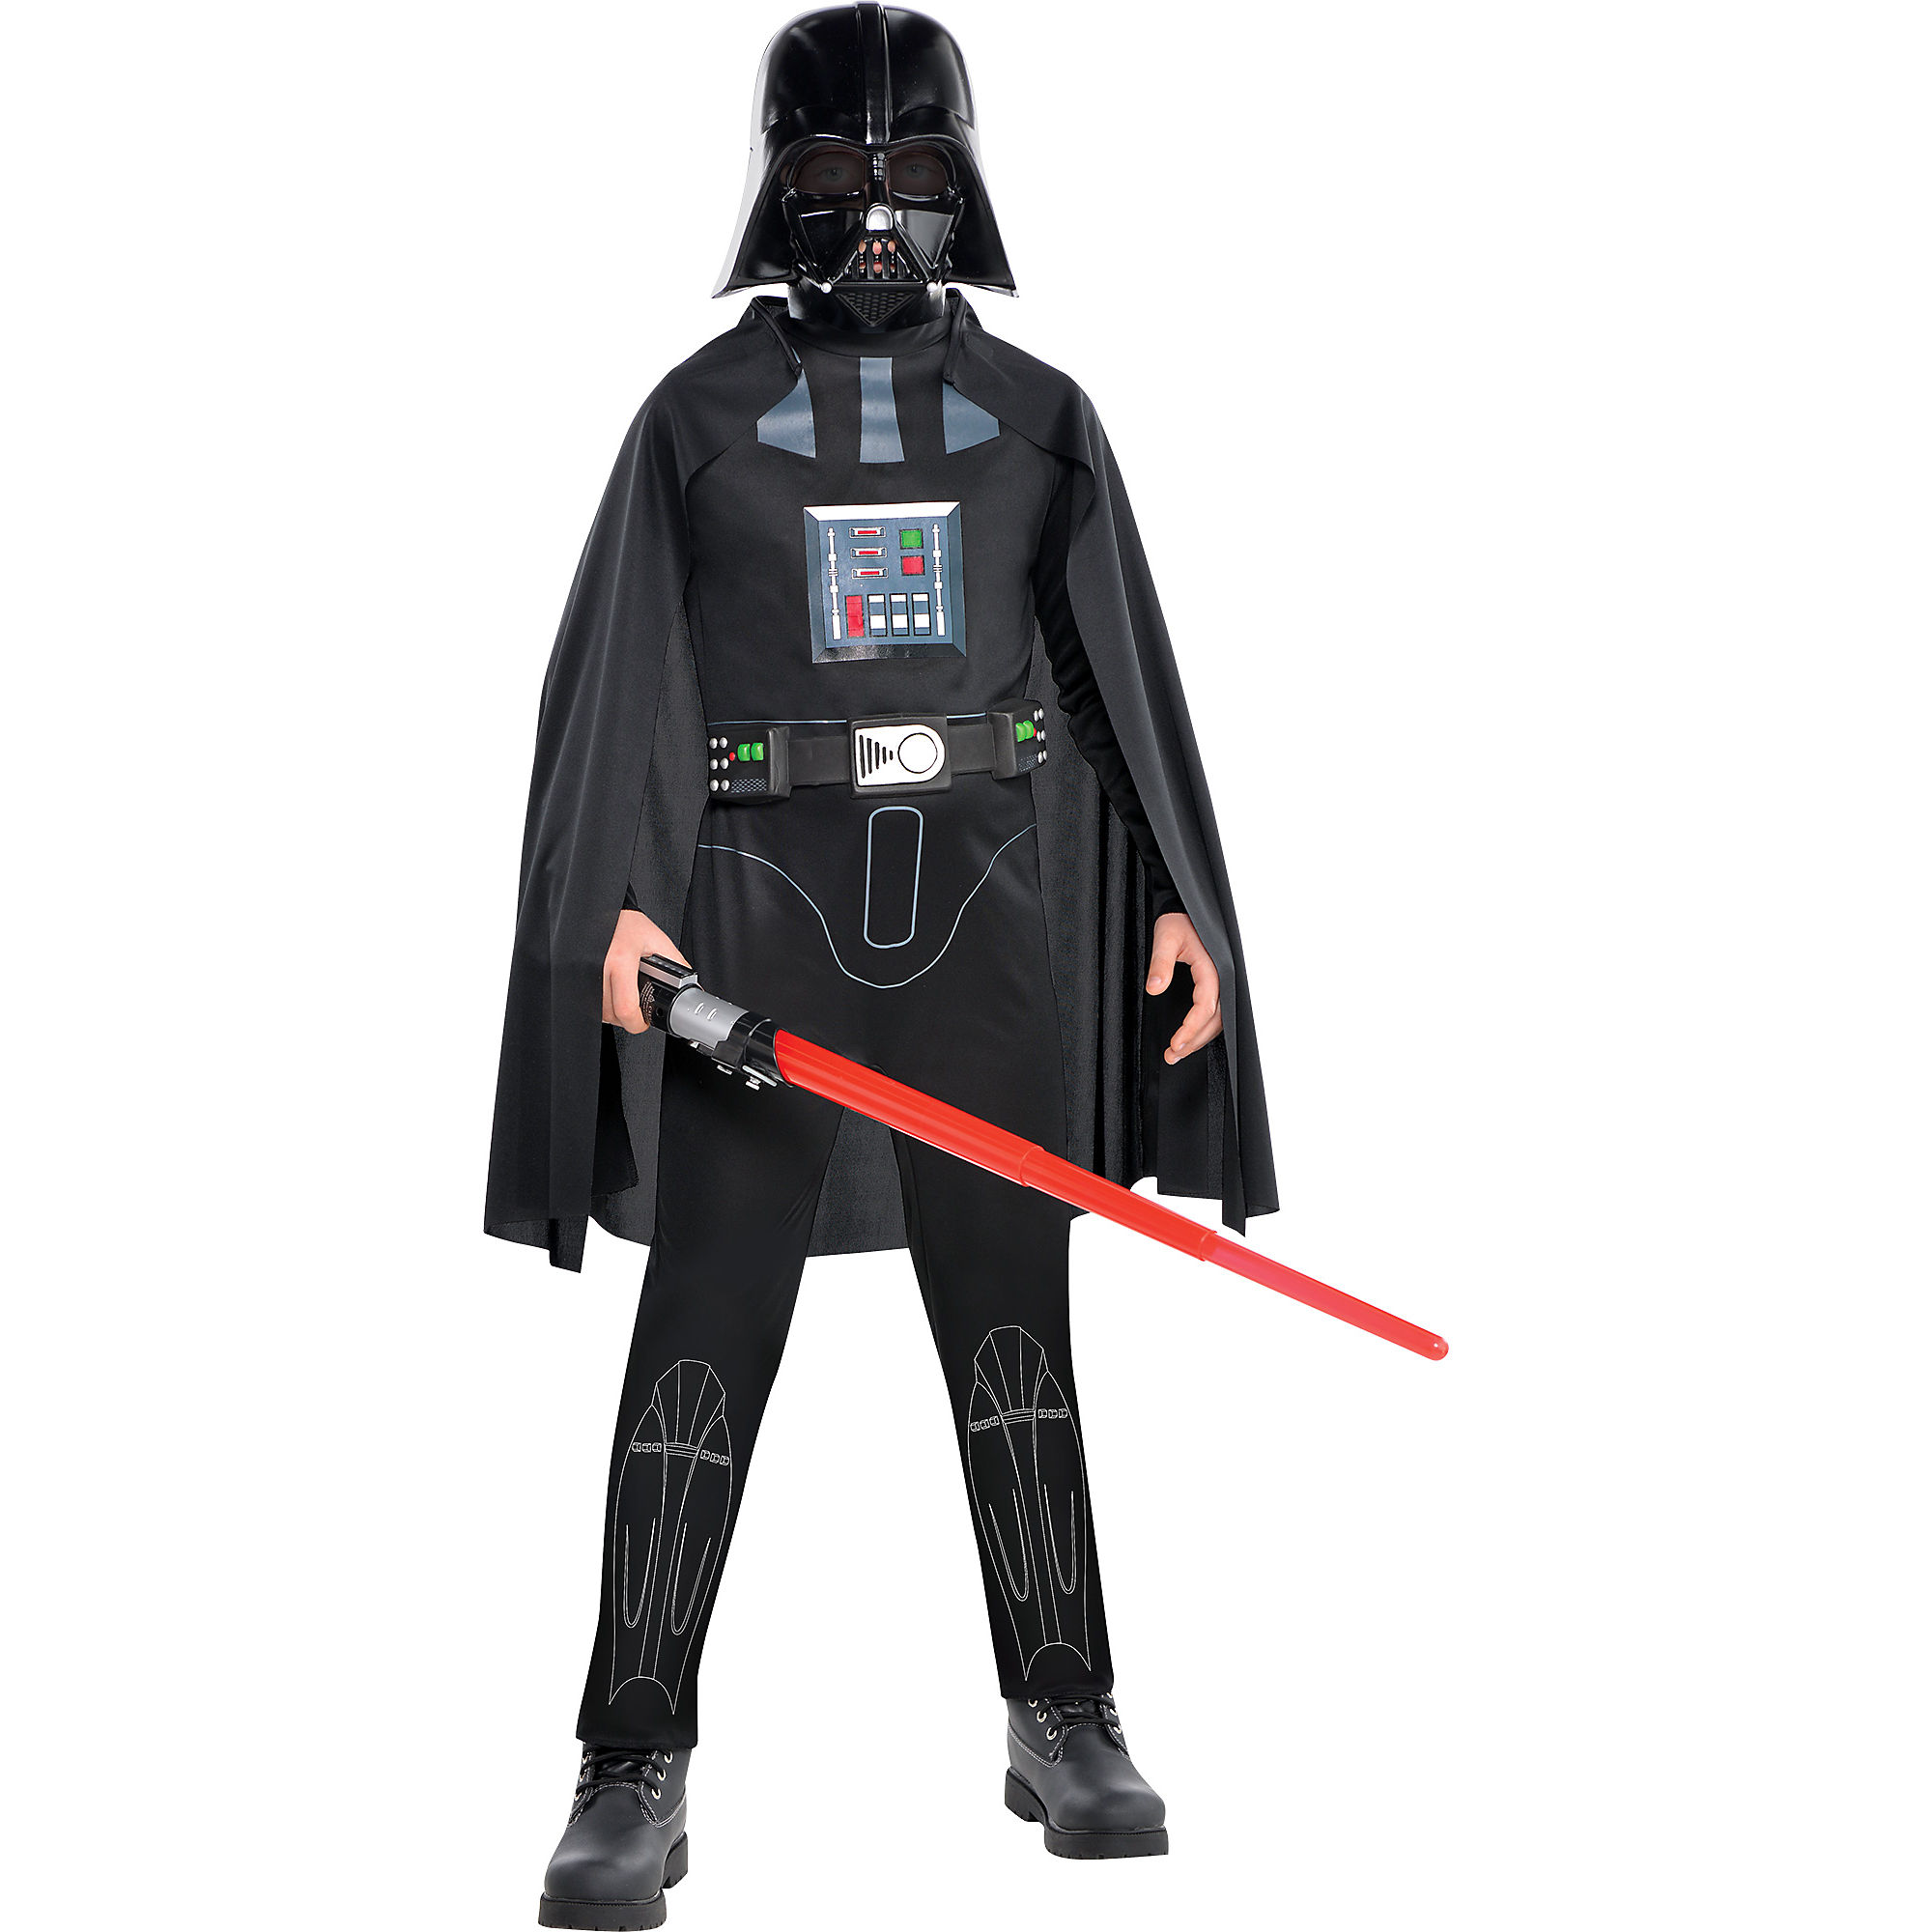 a Cape Includes a Jumpsuit a Mask Costumes USA Star Wars Darth Vader Costume Classic for Boys and More